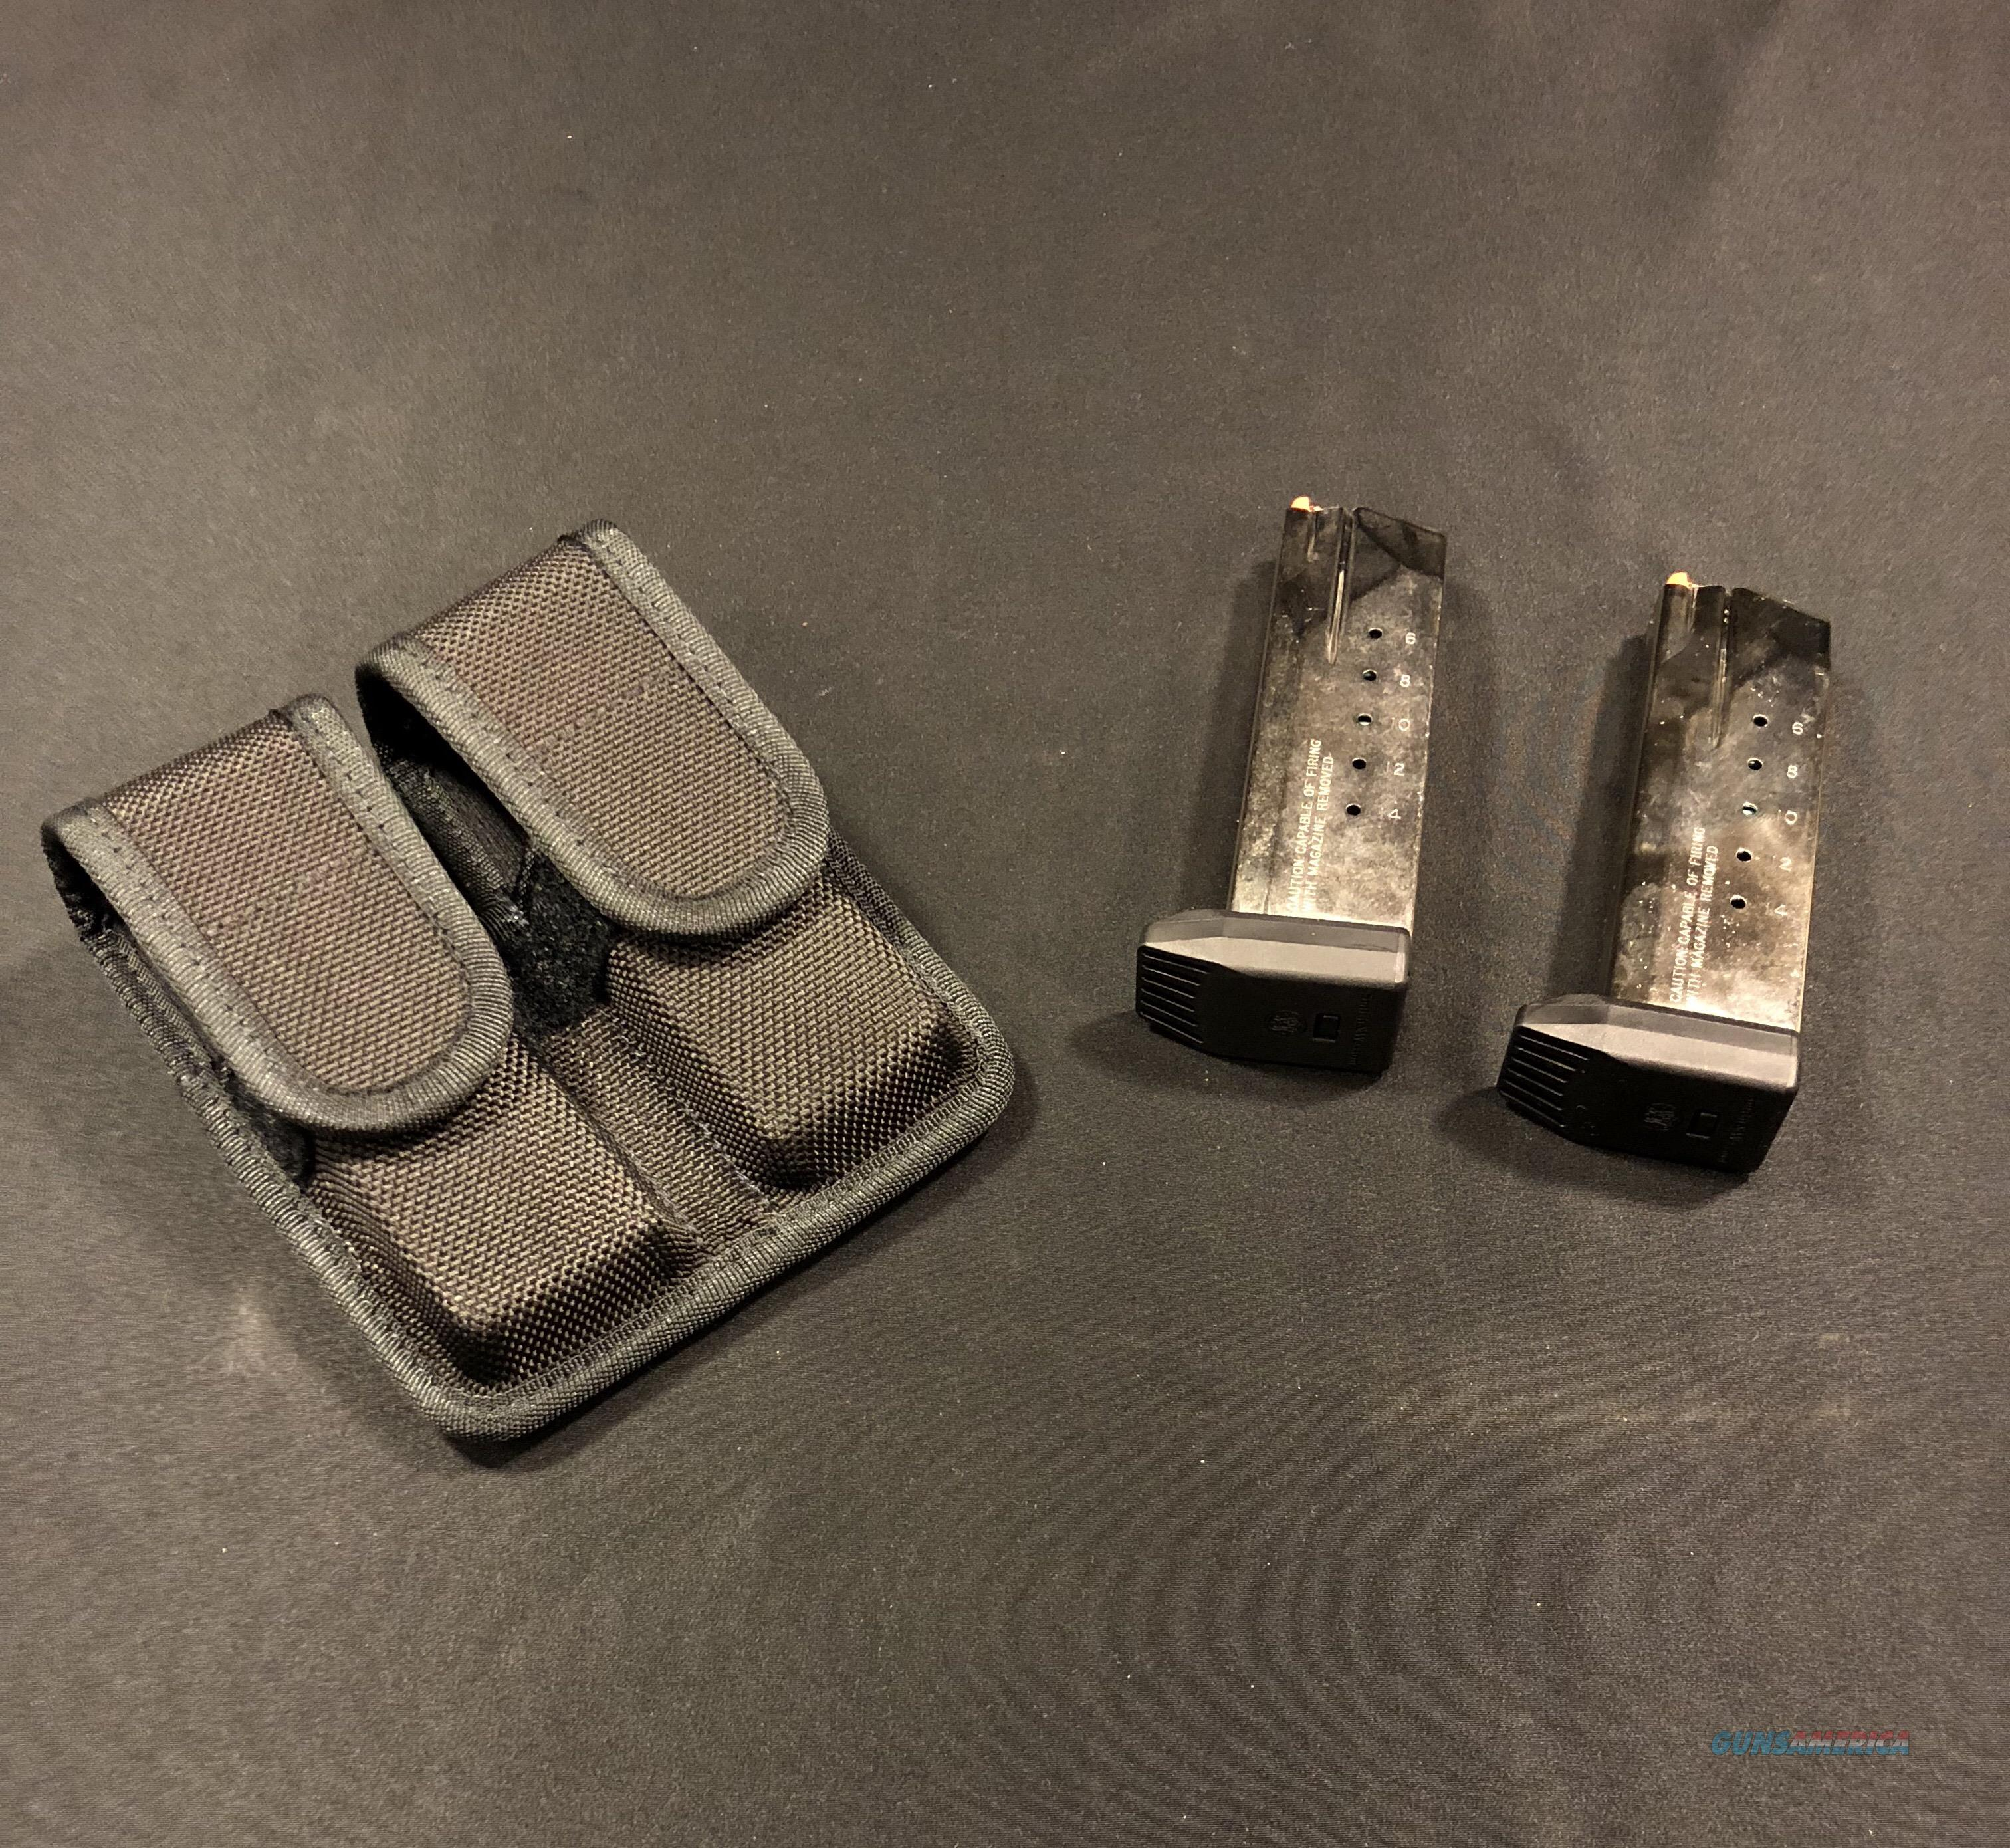 2 Smith & Wesson SW40F 15 Round Magazine Clips USED W/ Free Holster  Non-Guns > Magazines & Clips > Pistol Magazines > Smith & Wesson